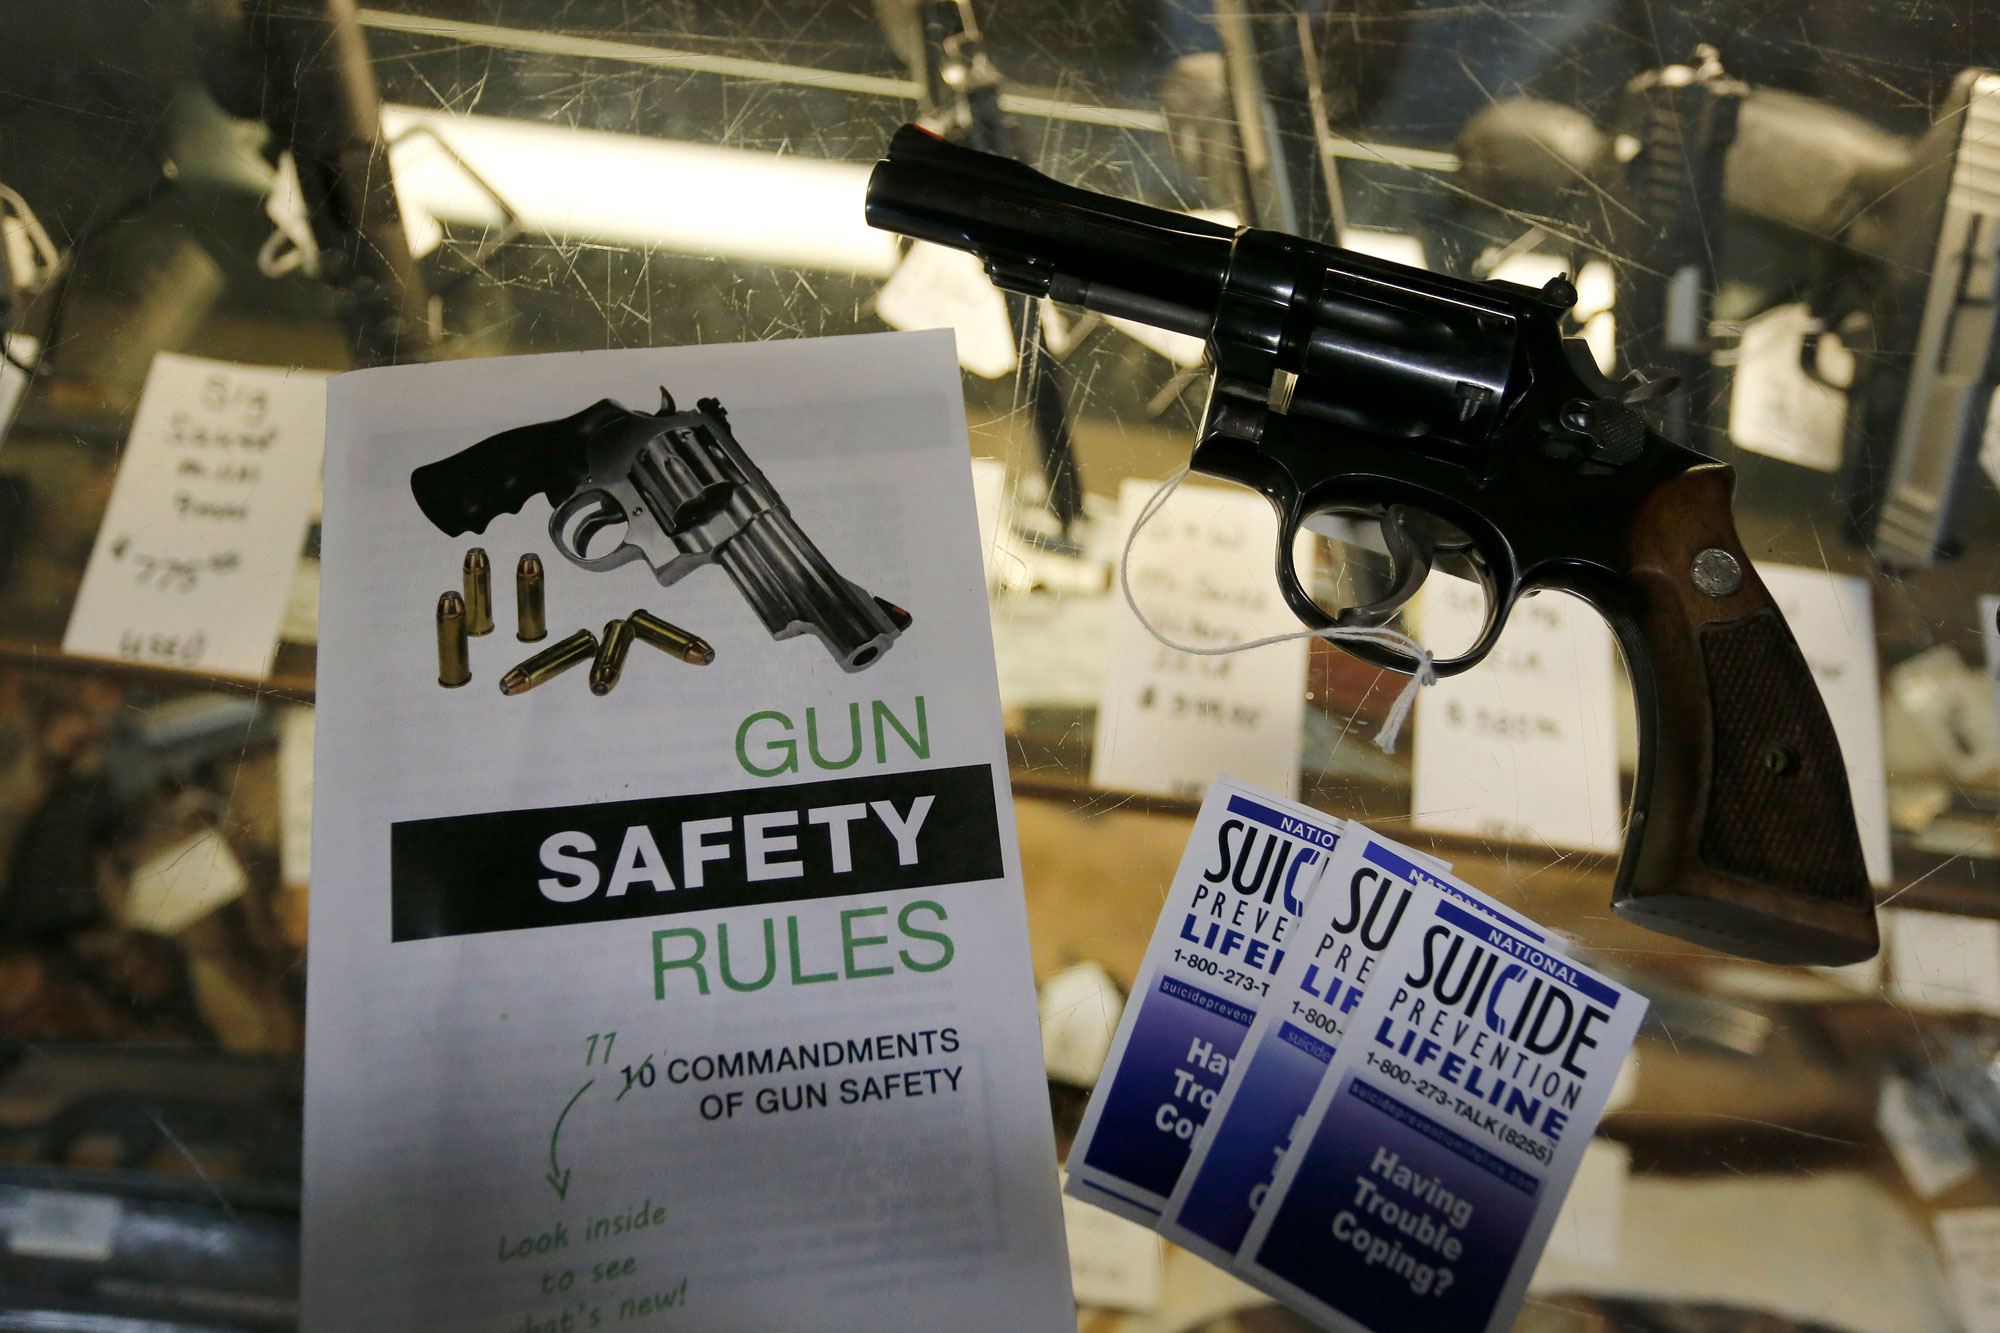 <p>In this Feb. 23, 2016 photo, gun safety and suicide prevention brochures on display next to guns for sale at a local retail gun store in Montrose, Colo.</p>